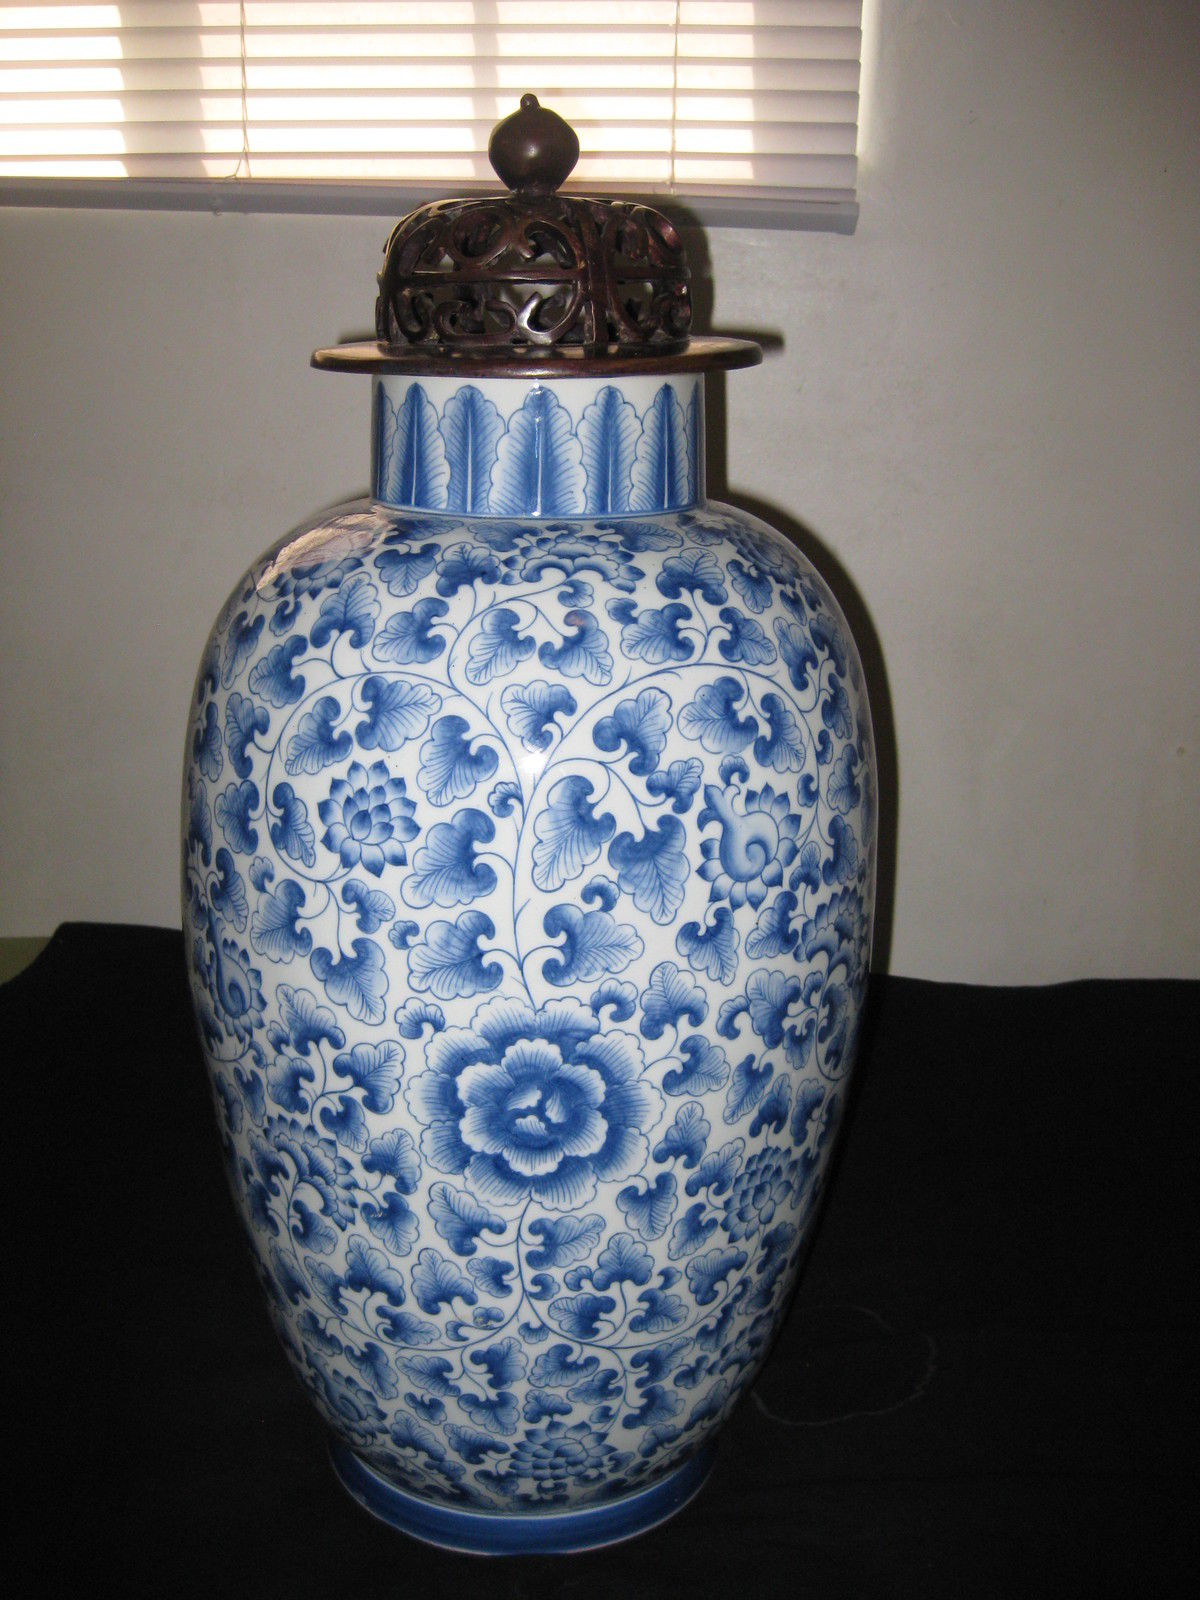 ANTIQUE CHINESE PORCELAIN BLUE AND WHITE VASE,19TH CENTURY WITH SOLID BRONZE LID